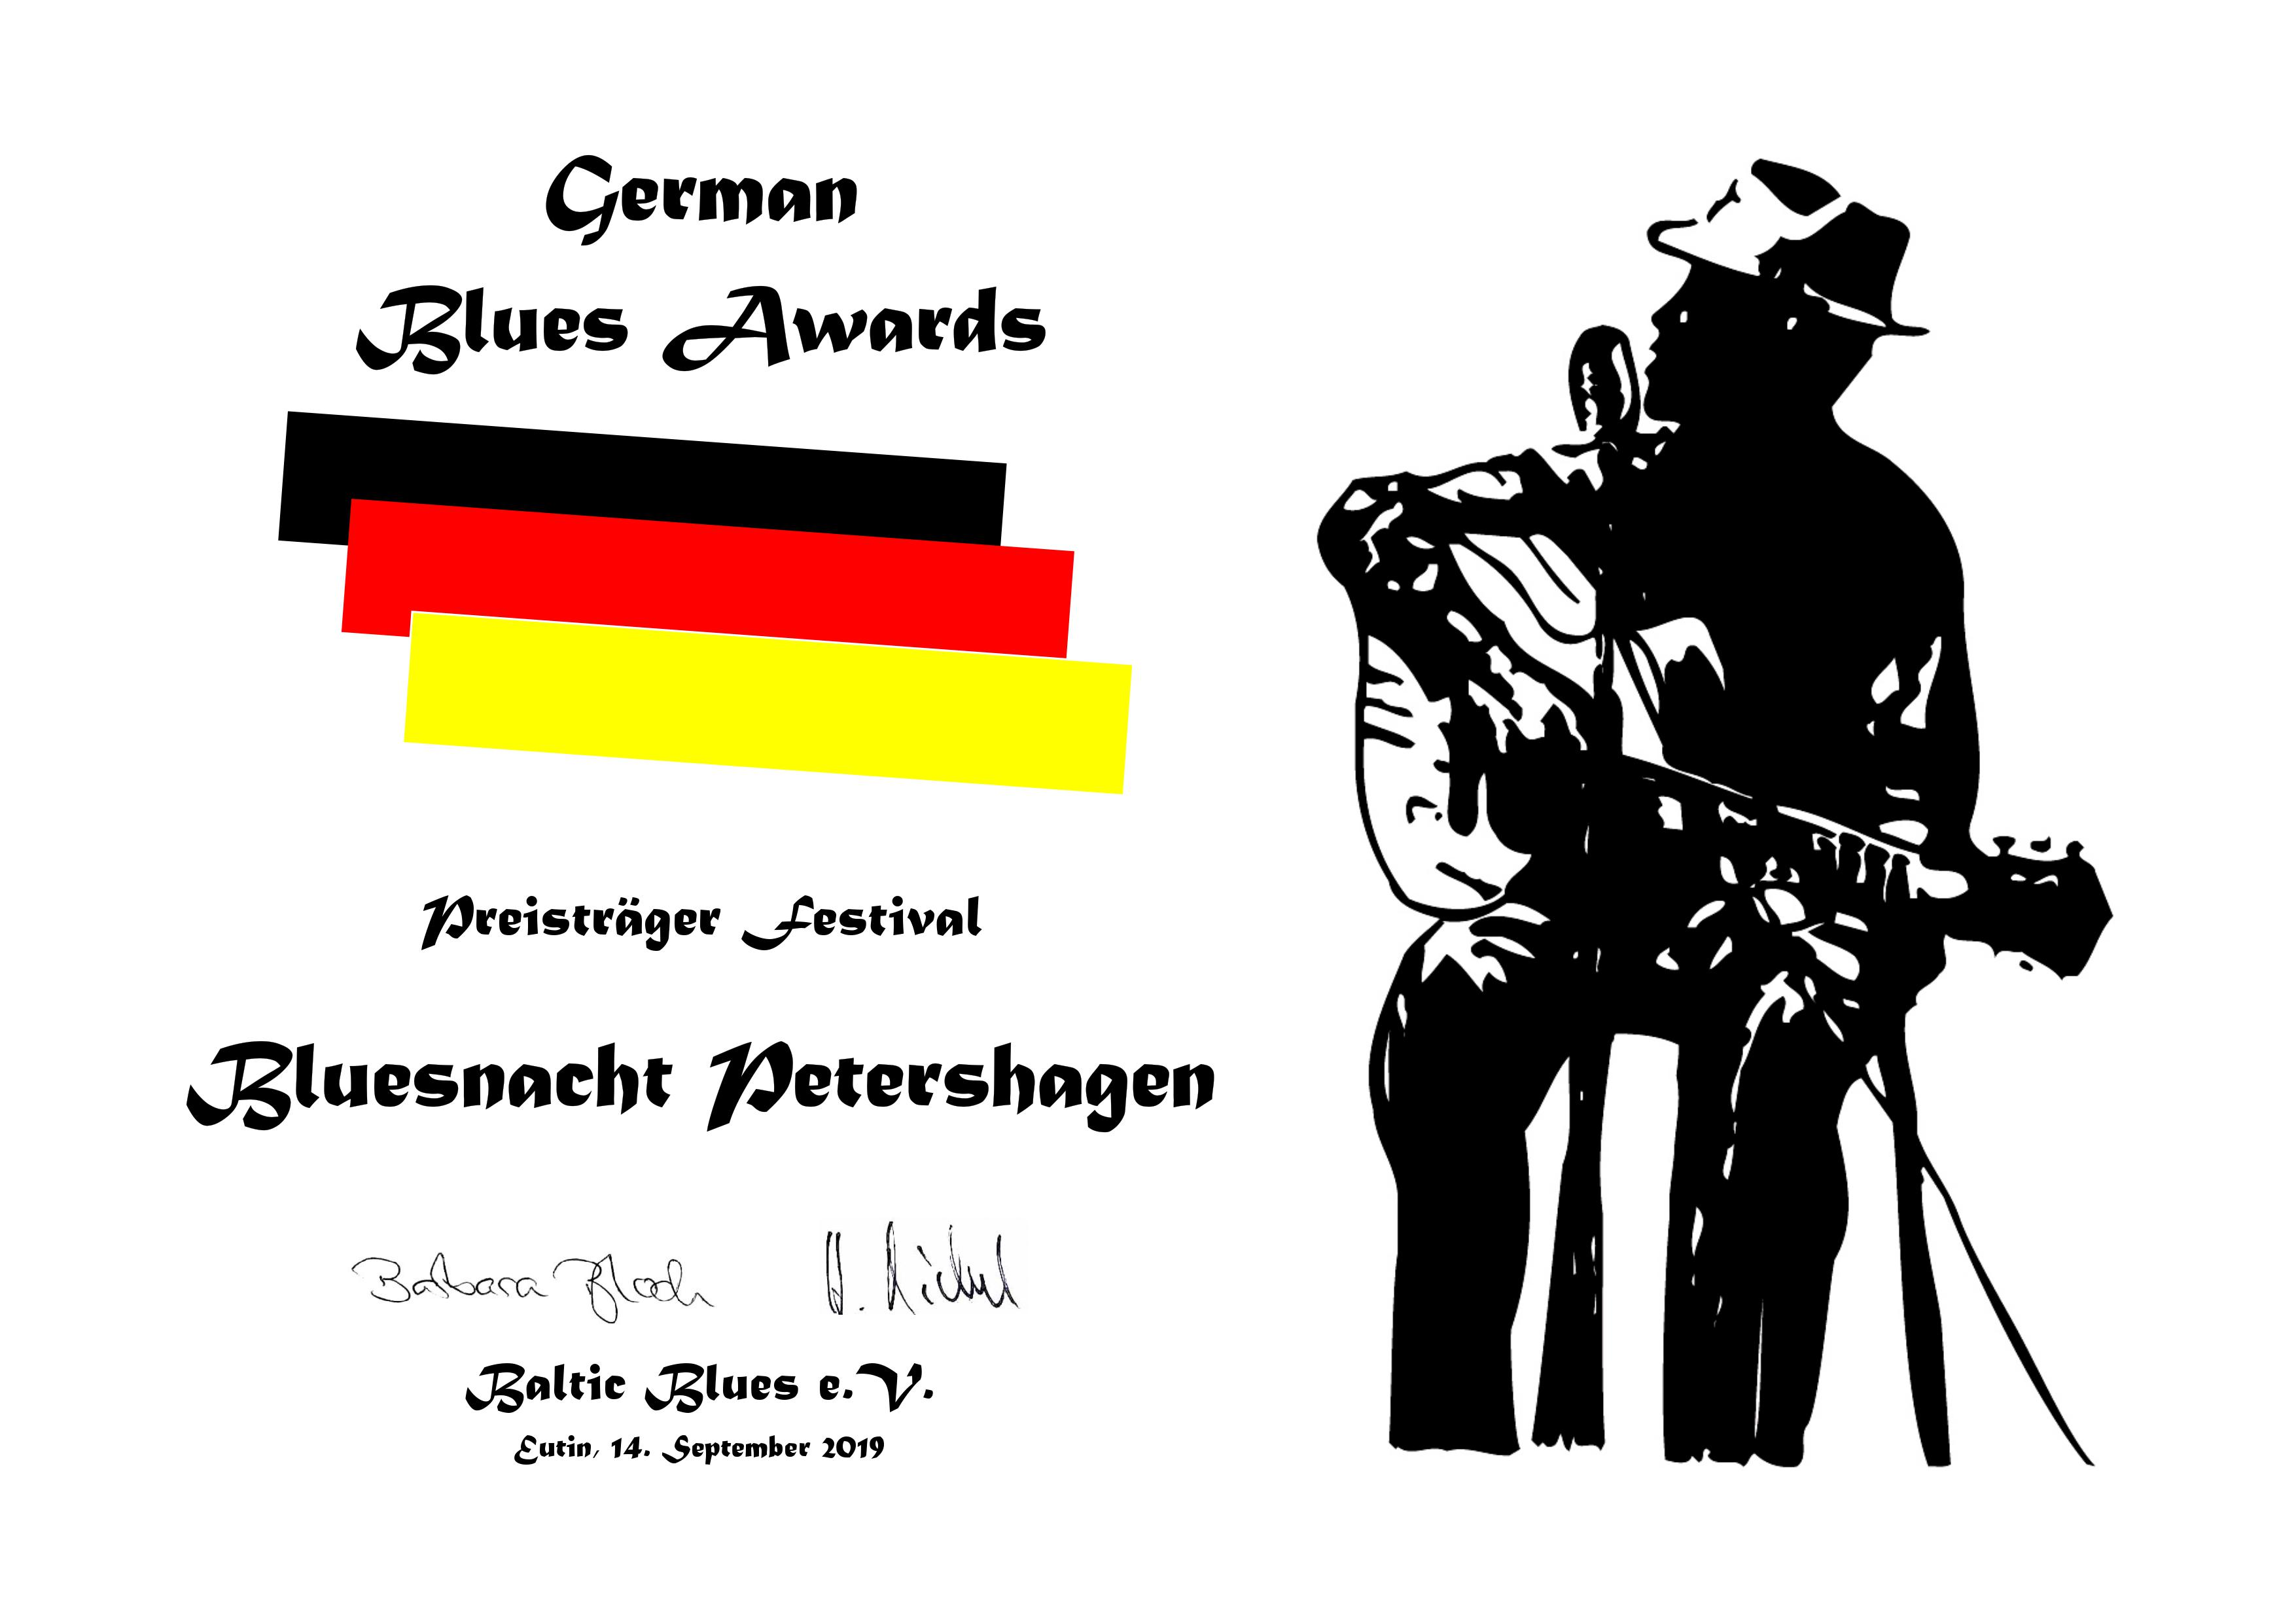 Urkunde German Blues Award 19